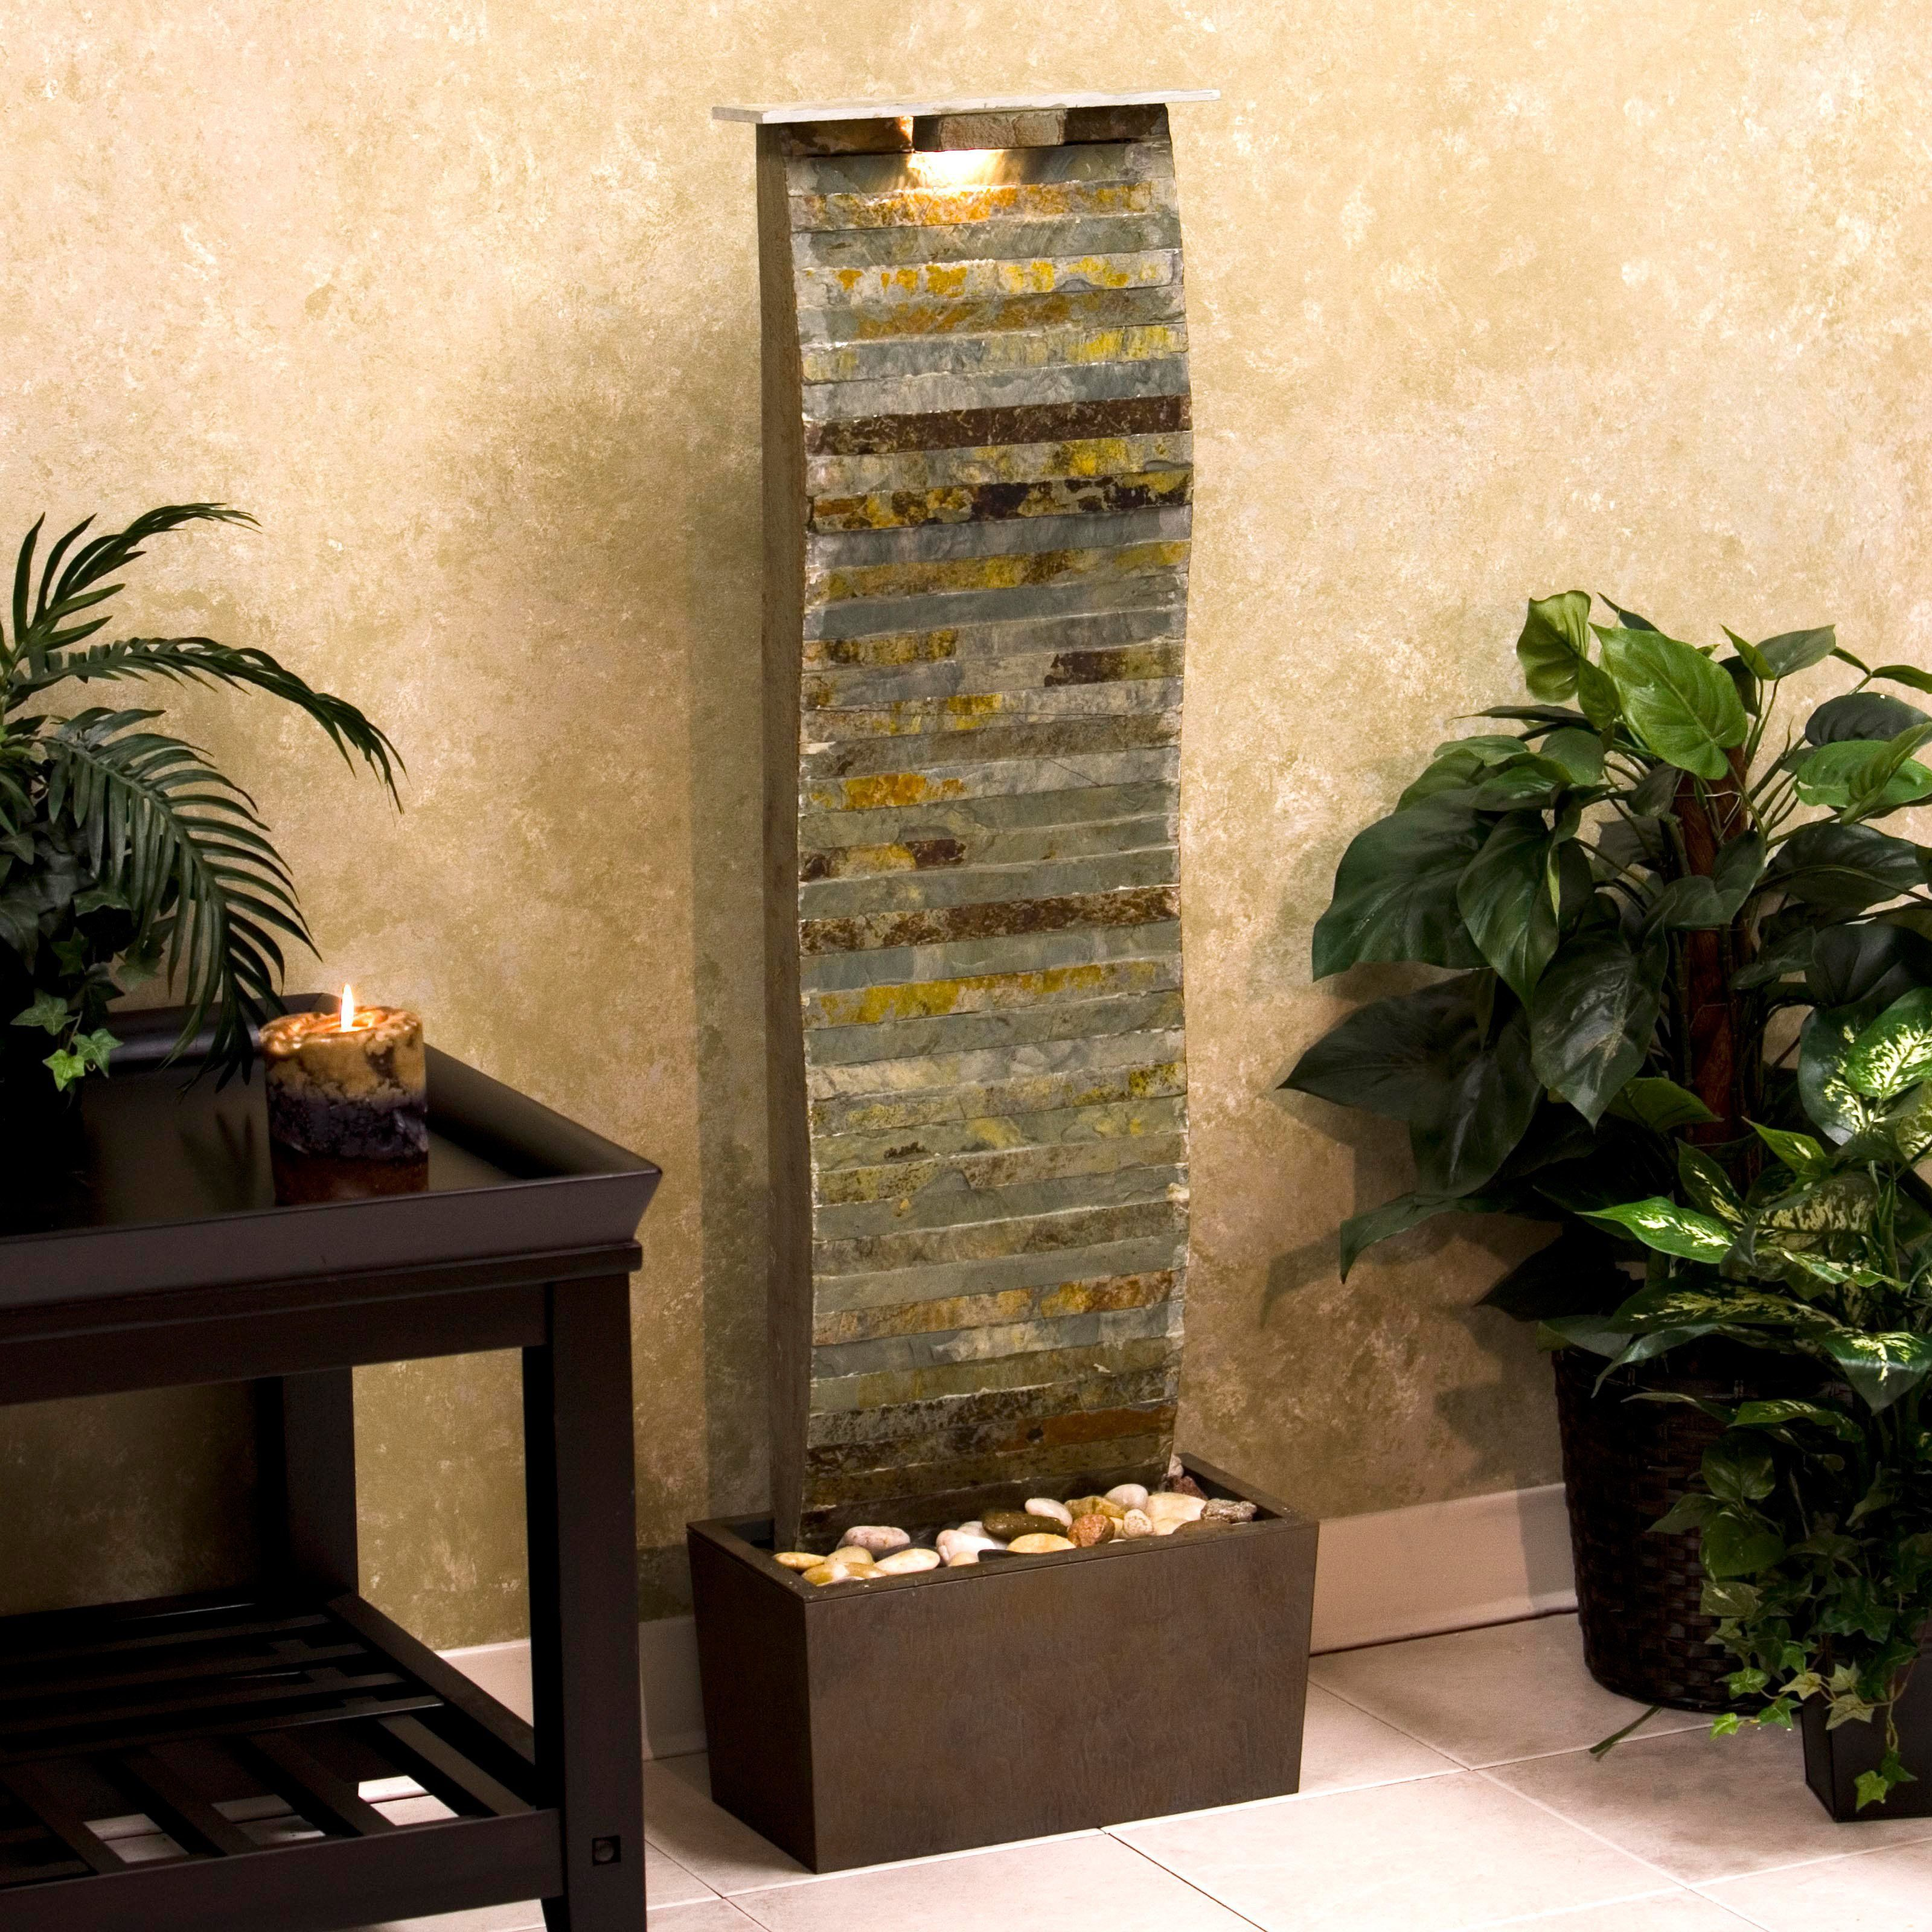 Pin By Nubika House On Decor Ideas Indoor Water Fountains Diy